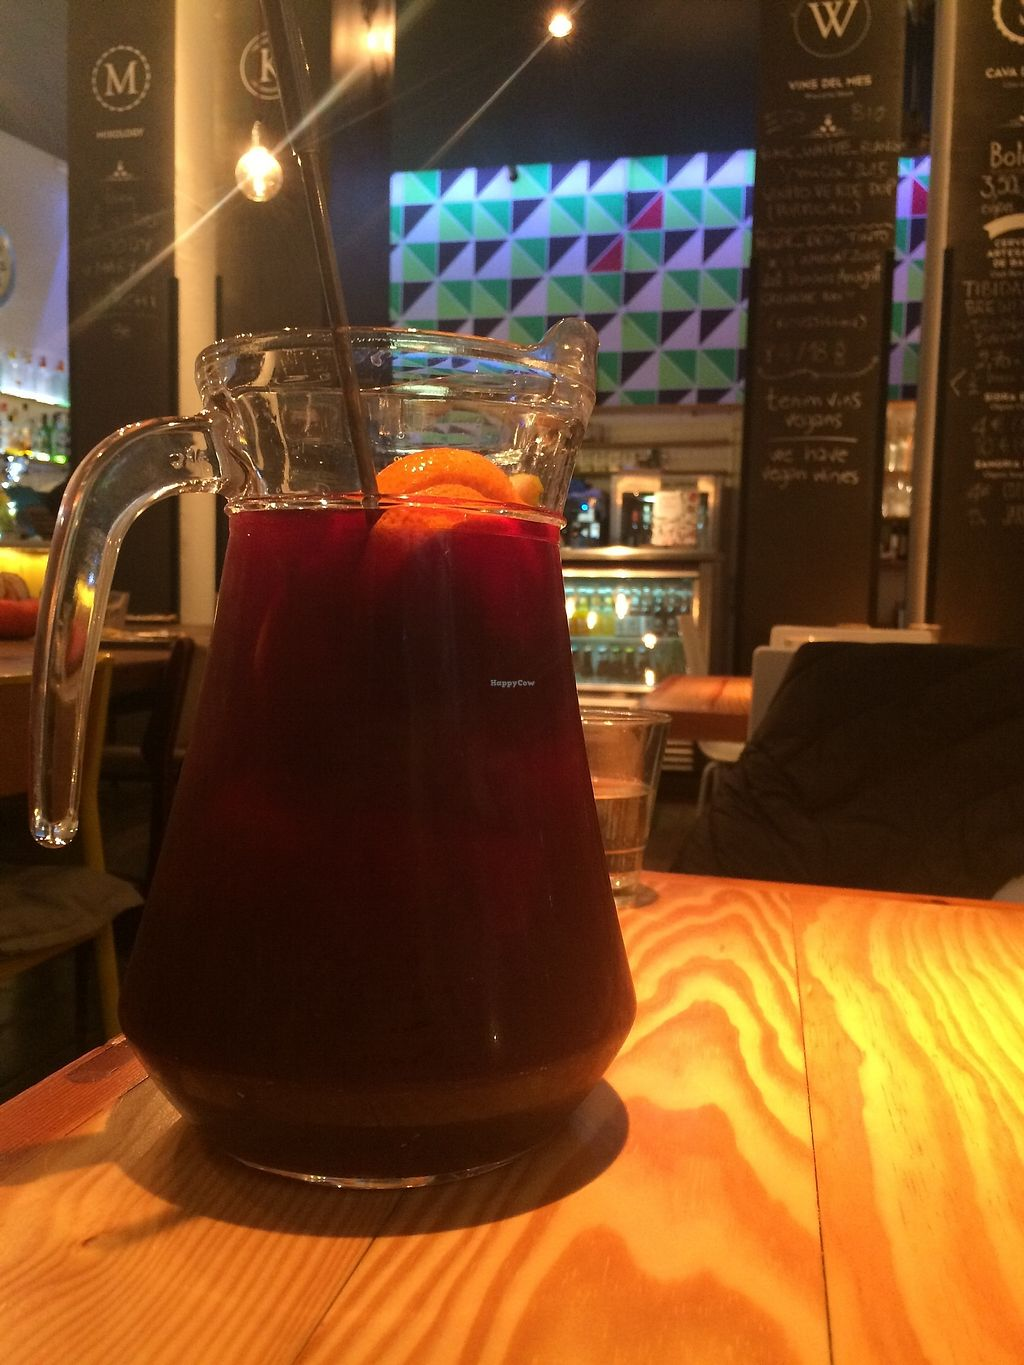 "Photo of Rasoterra Bistrot Vegetaria  by <a href=""/members/profile/sabrinajh"">sabrinajh</a> <br/>Pitcher of sangria, very good! <br/> December 31, 2017  - <a href='/contact/abuse/image/37964/341433'>Report</a>"